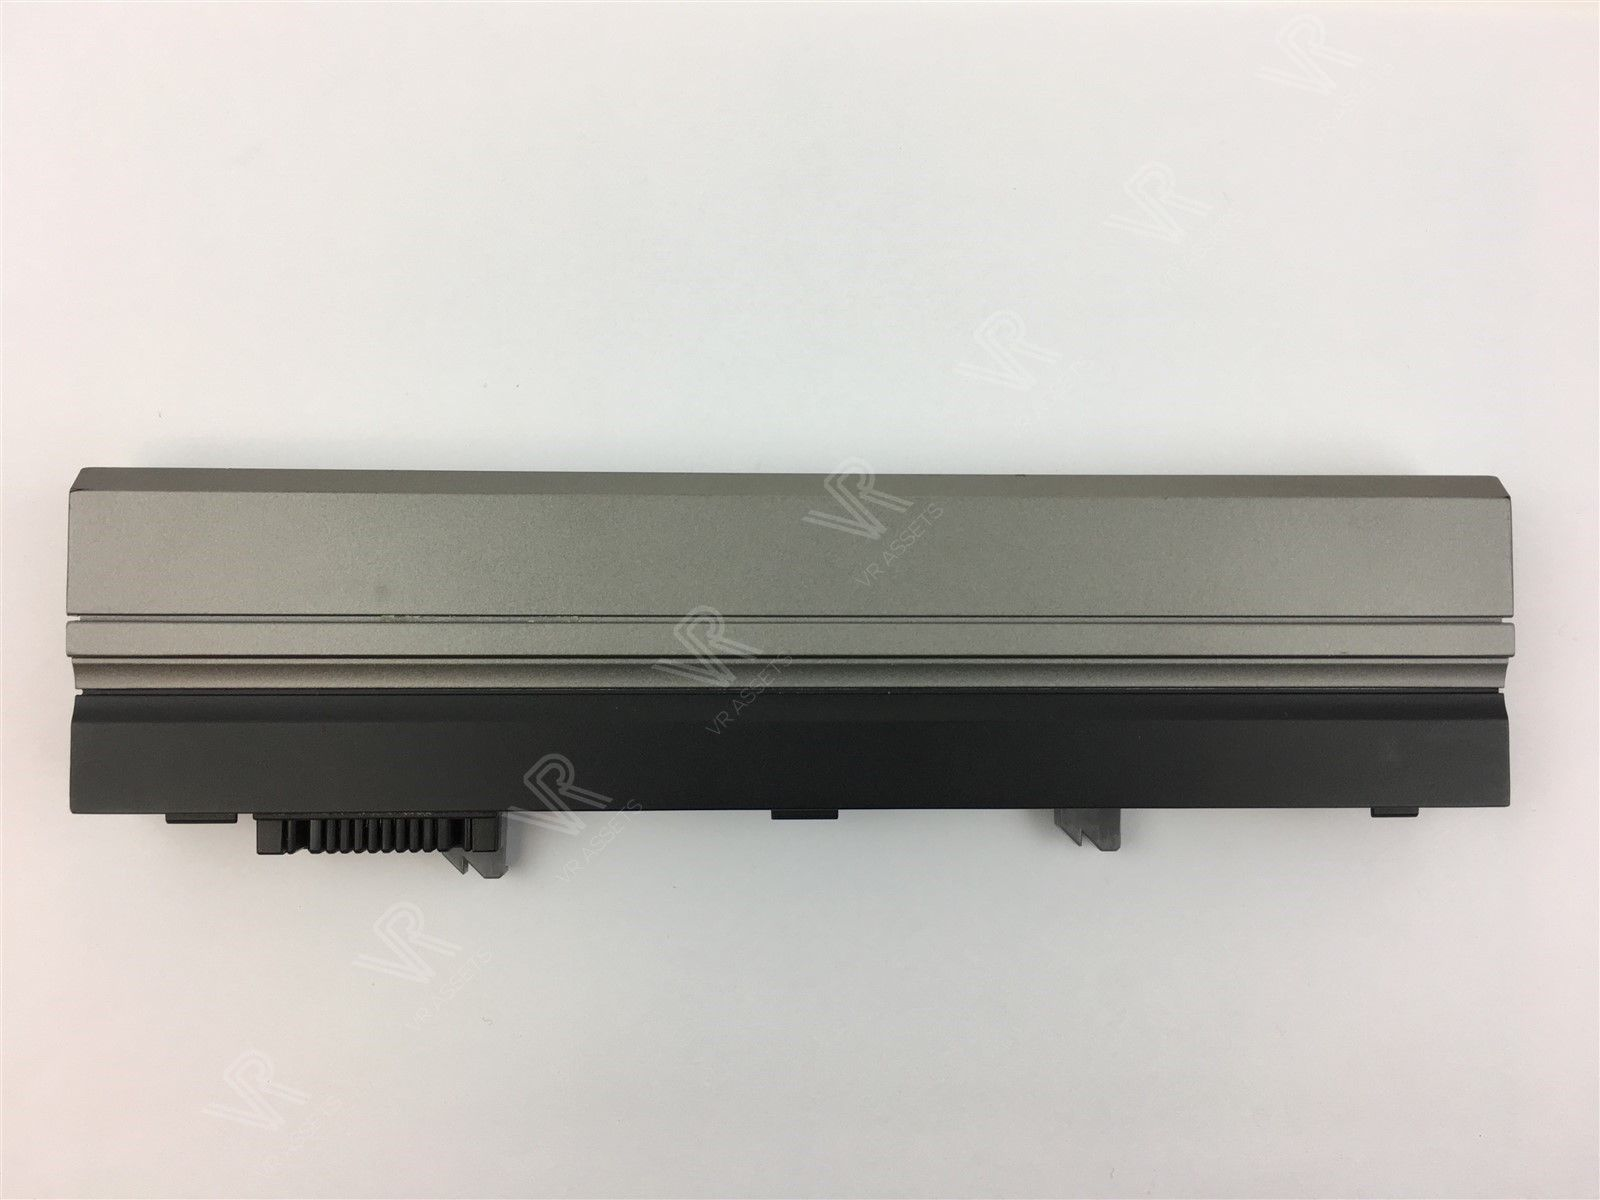 Dell Latitude E4310 60Wh 11.1V Type R3026 6 Cell Laptop Battery P8F45 0P8F45